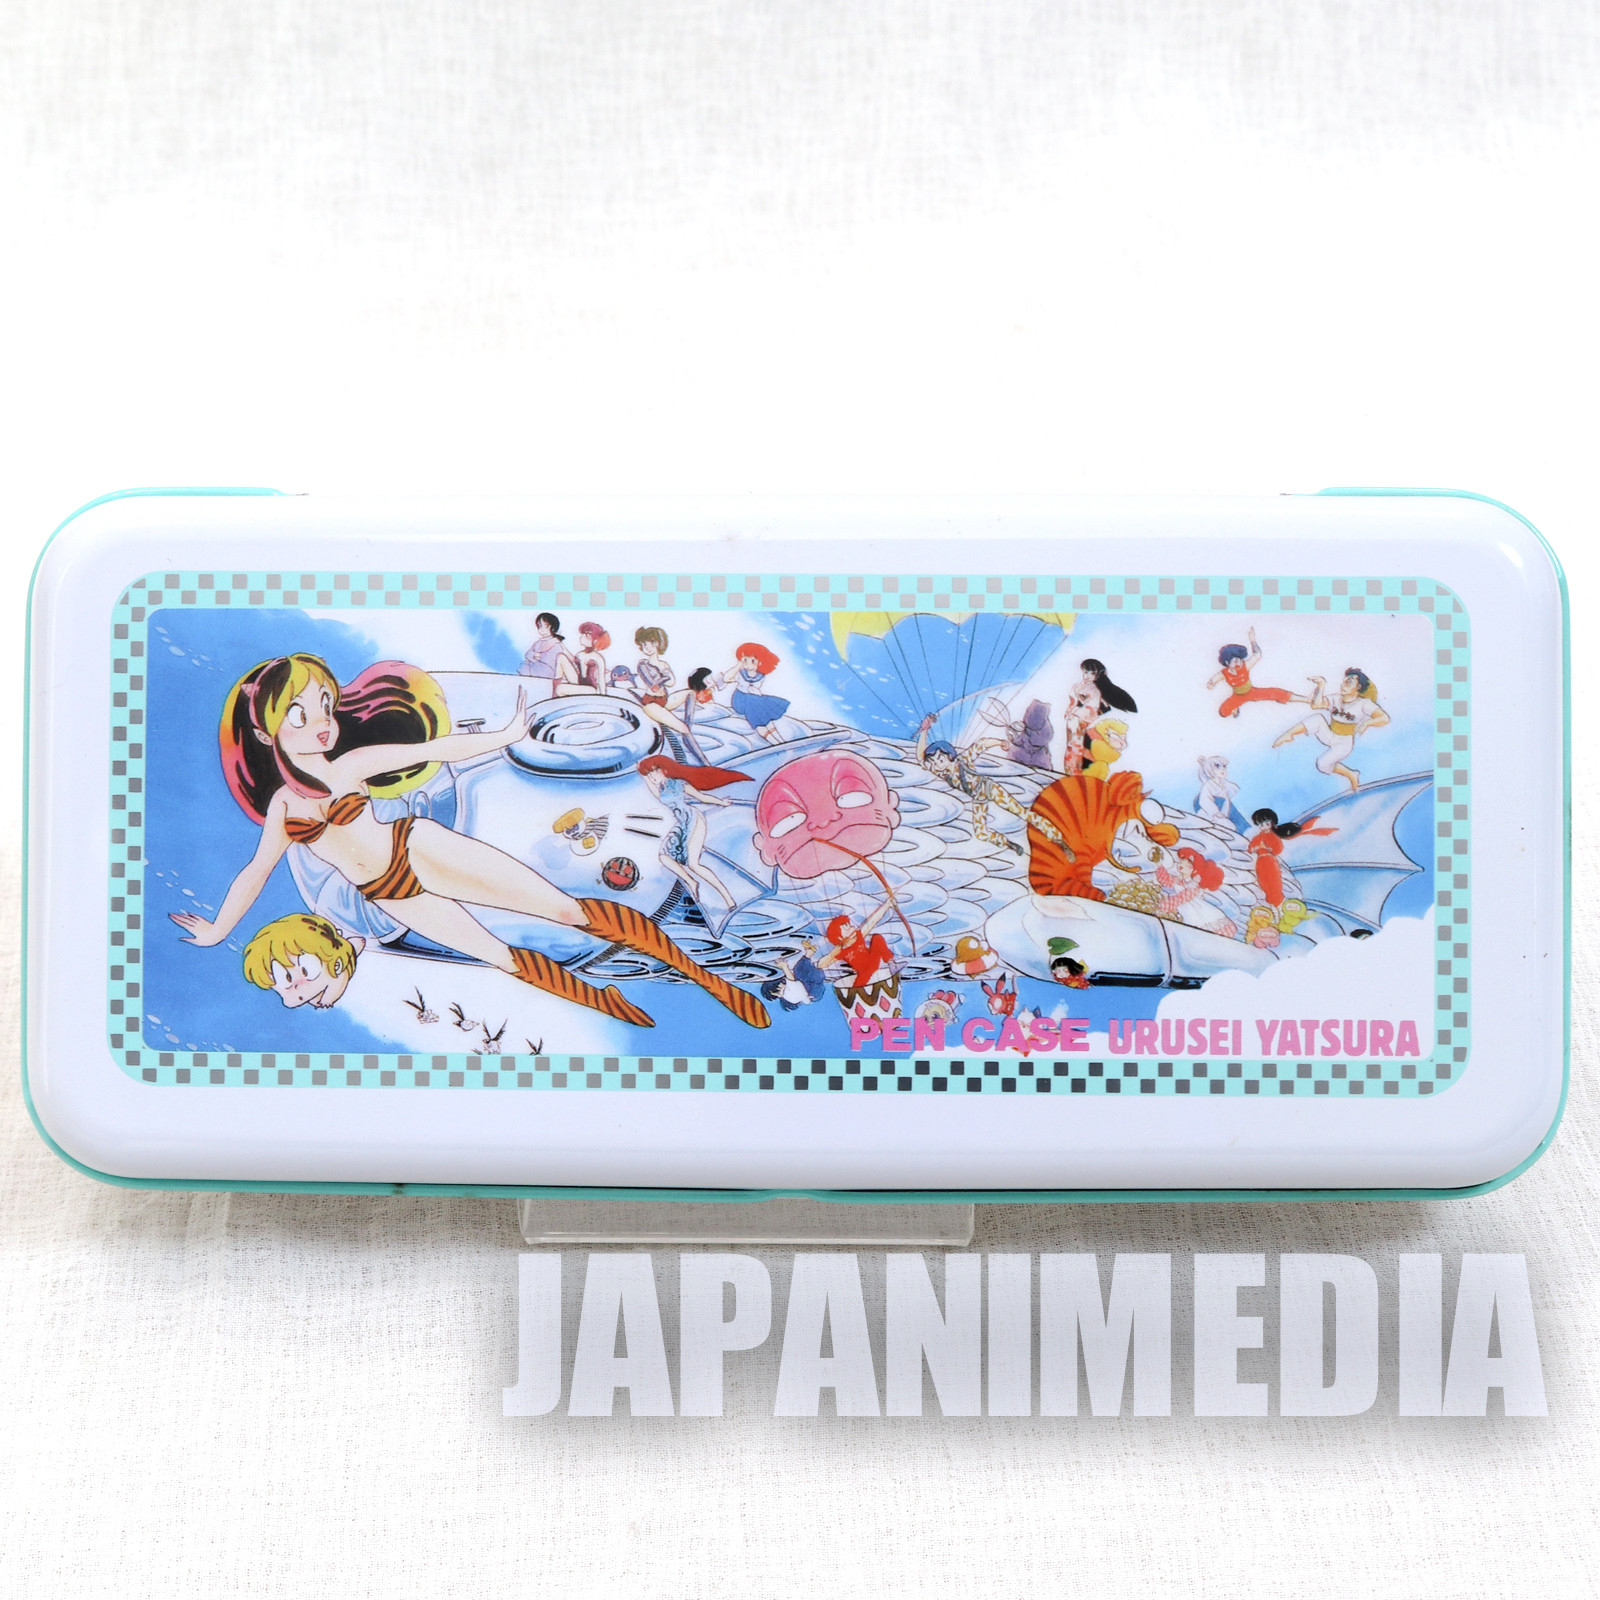 Retro RARE Urusei Yatsura Pen Case LUM JAPAN ANIME MANGA 10